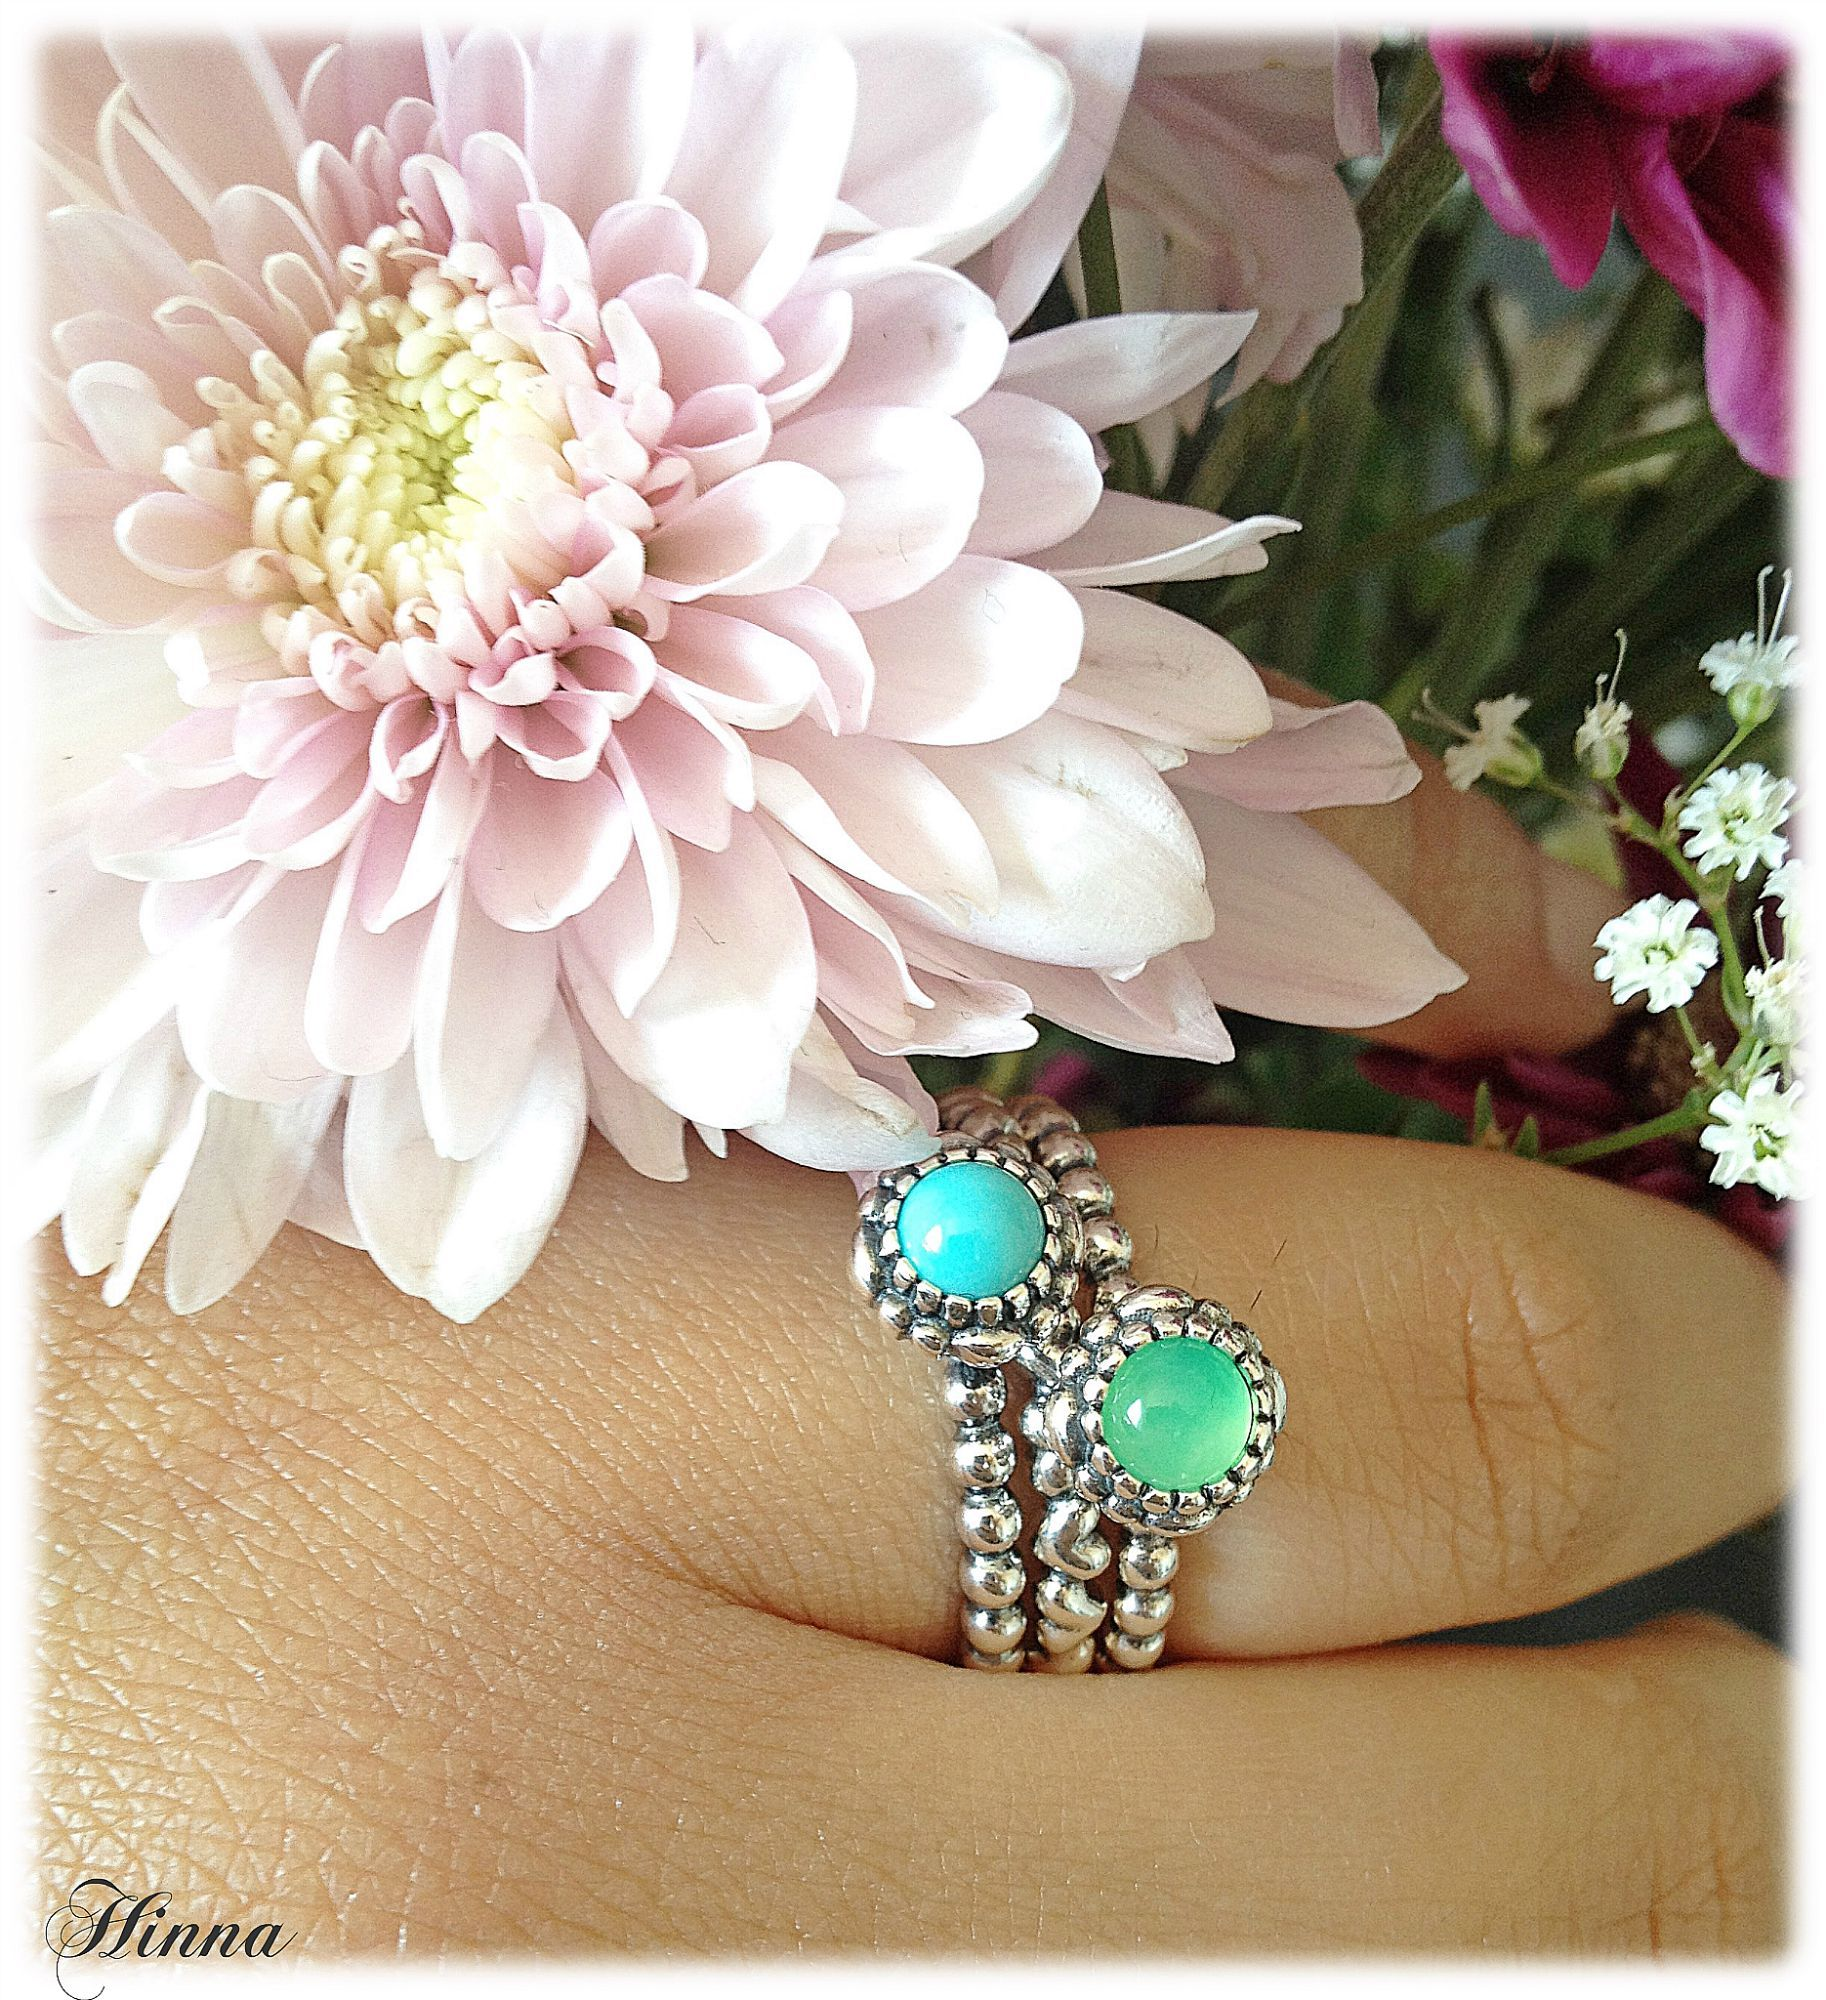 8d4cbf08e Chryoprase and Turquoise birthstone rings 190854CH and 190854TQ with a  Valentine heart ring. Great combination!